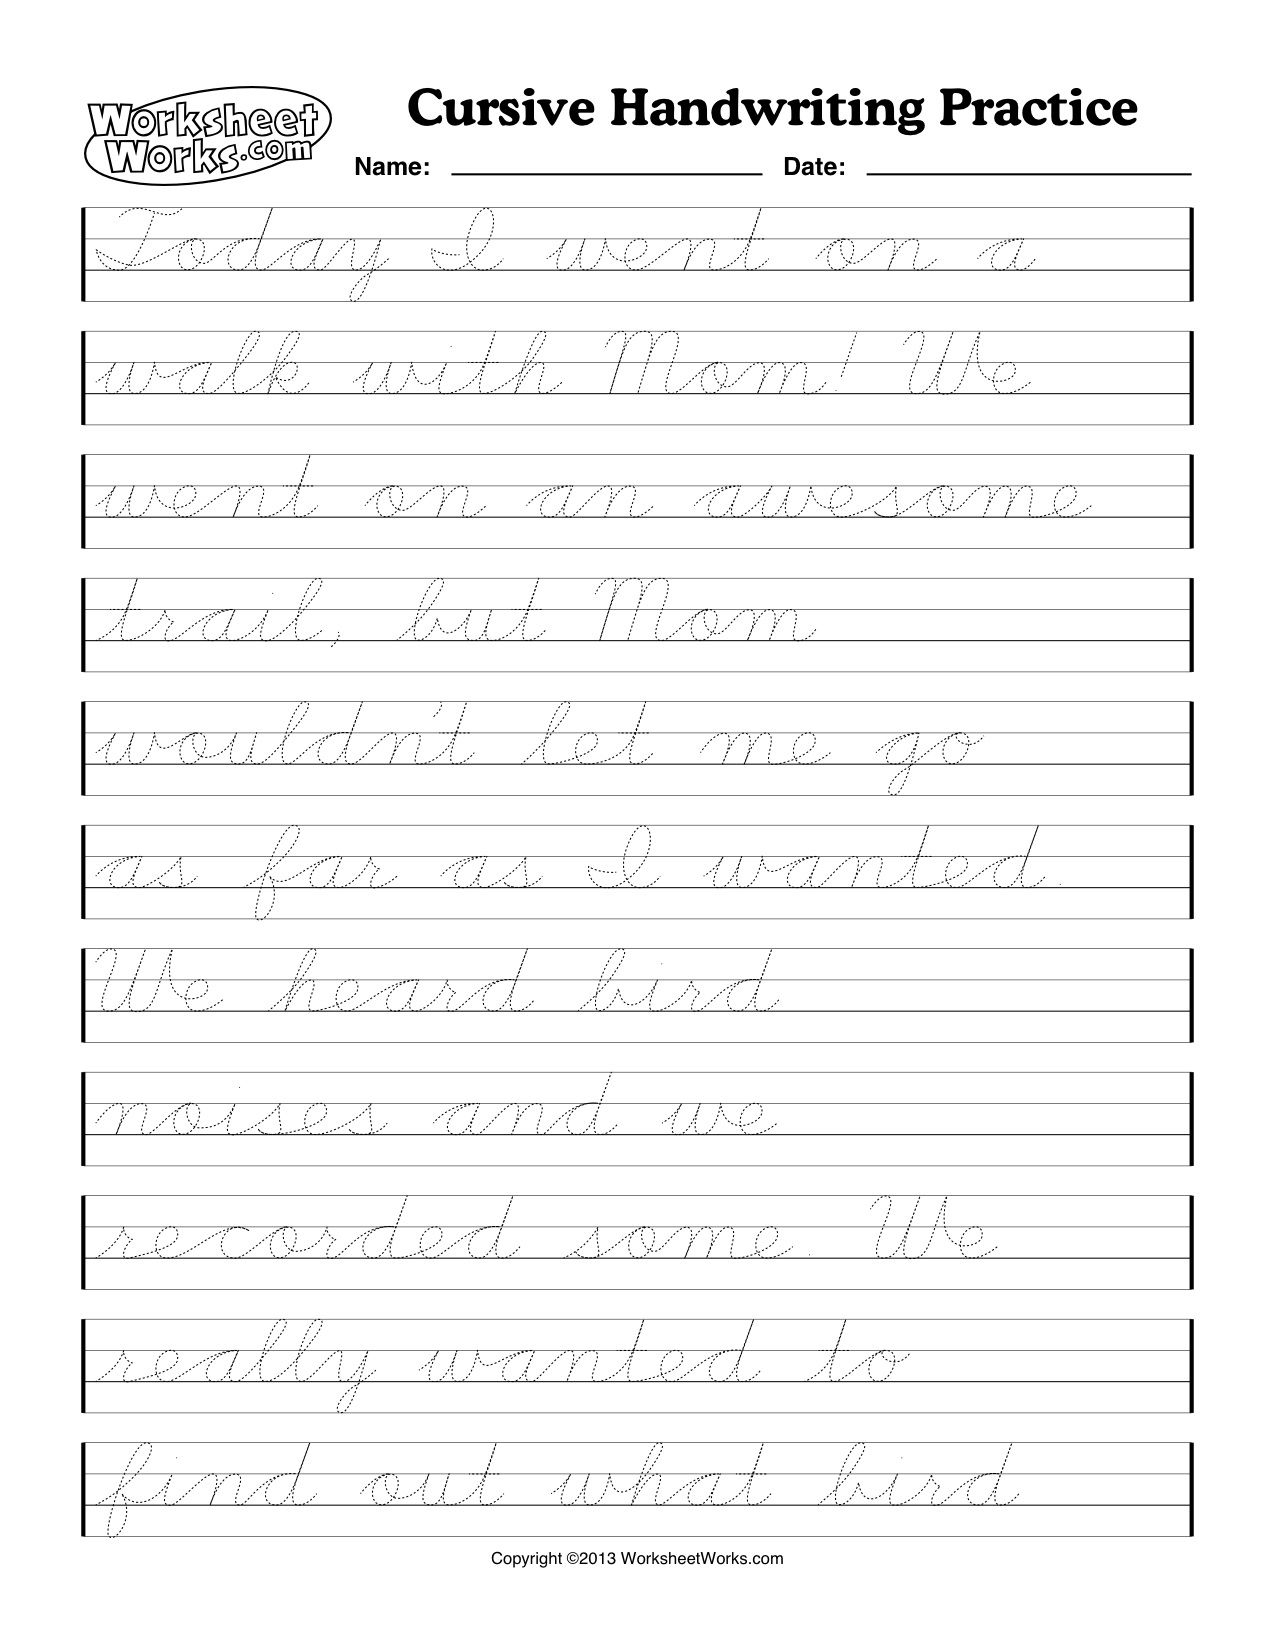 Printable Cursive Handwriting Worksheet Generator